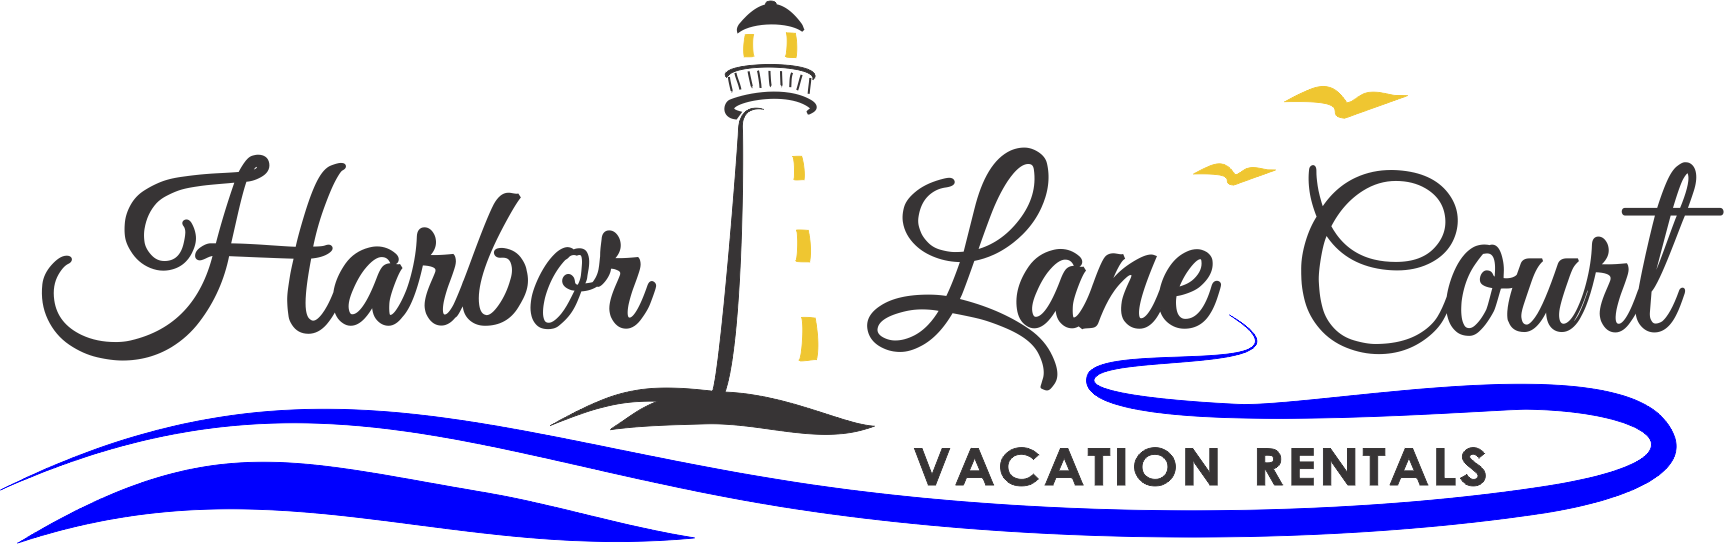 Harbor Lane Court Vacation Rentals